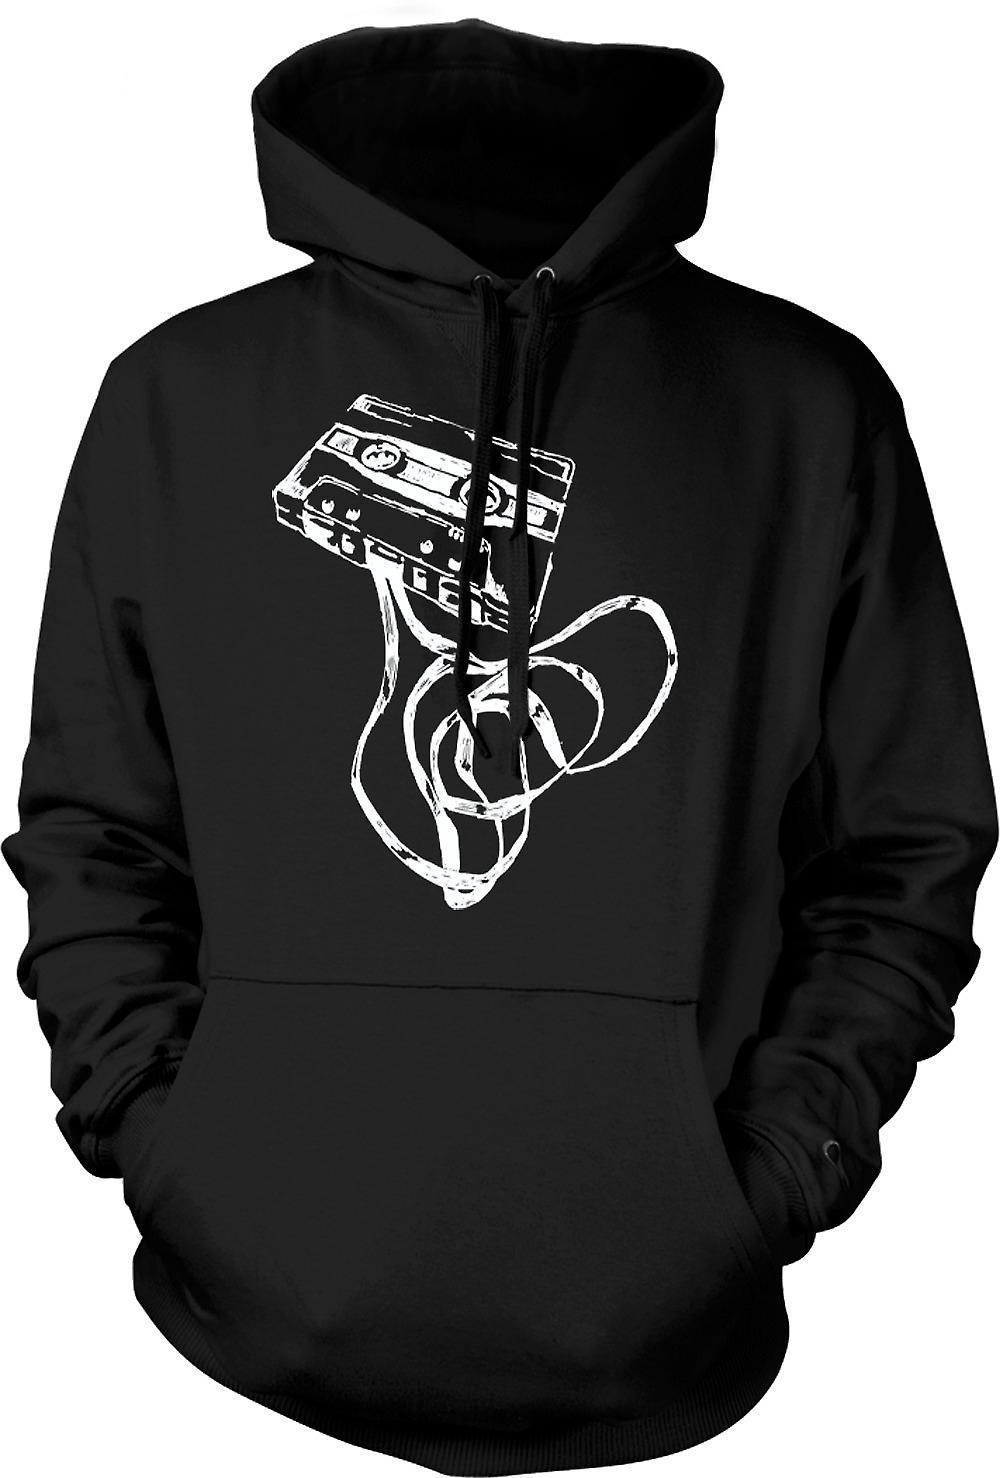 Mens Hoodie - Old Skool Tape